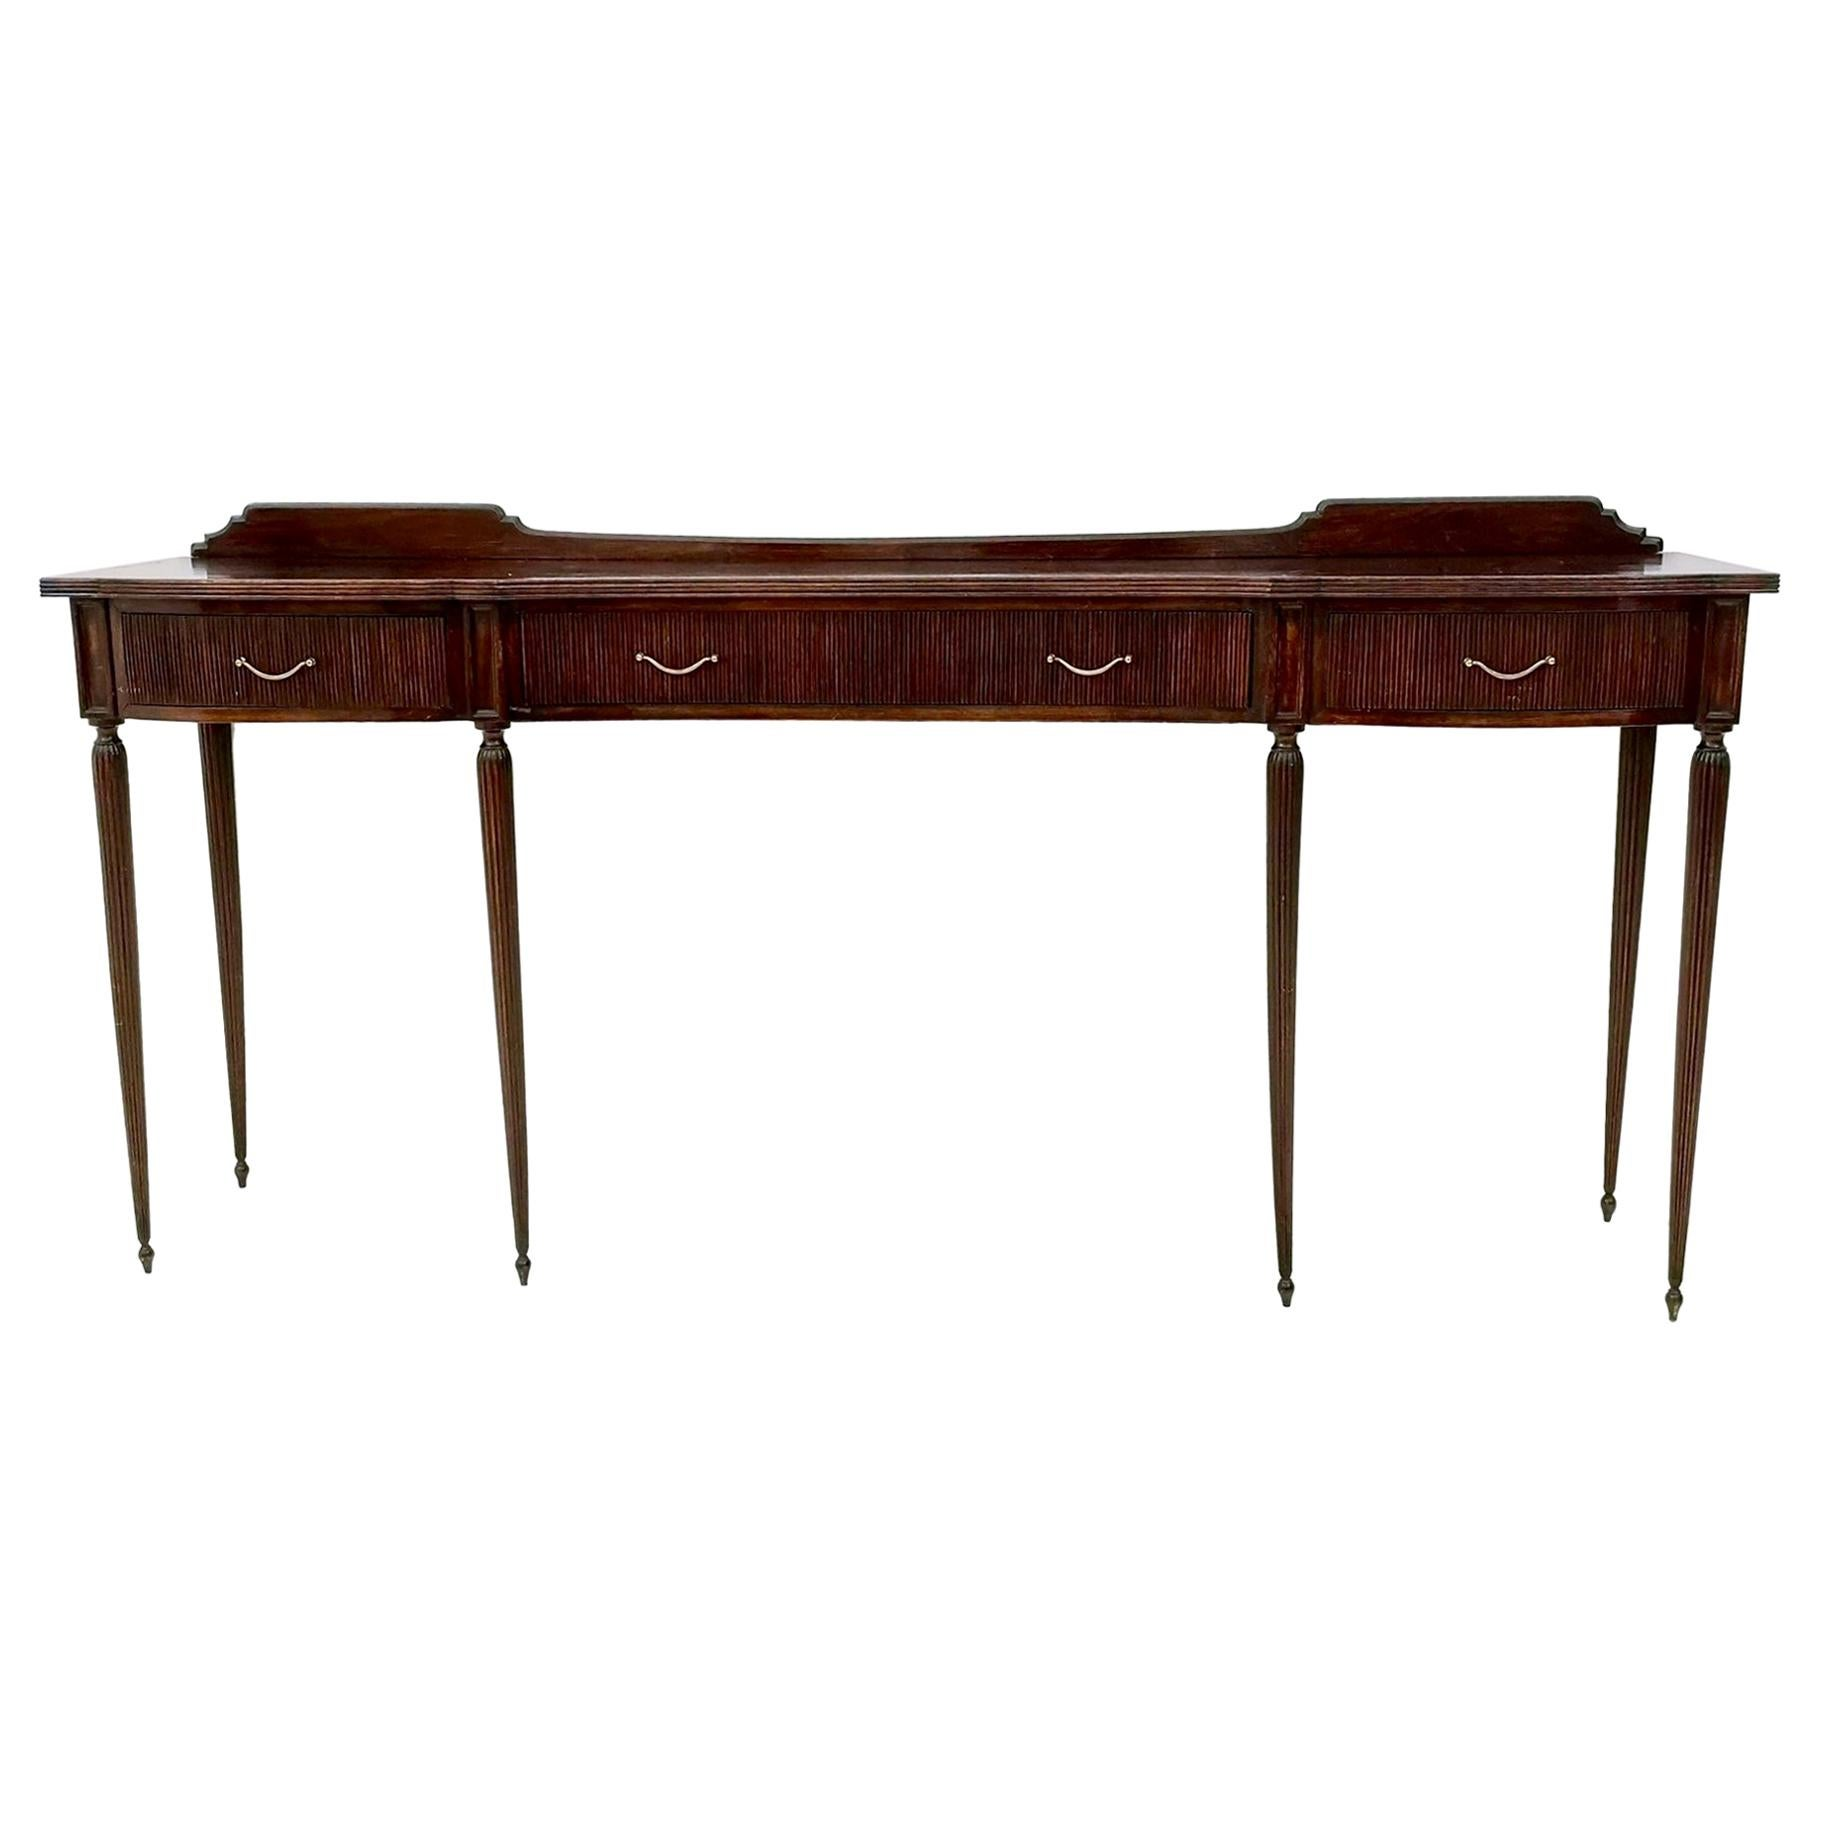 Midcentury Large Wooden Console Table with Brass Handles, Italy